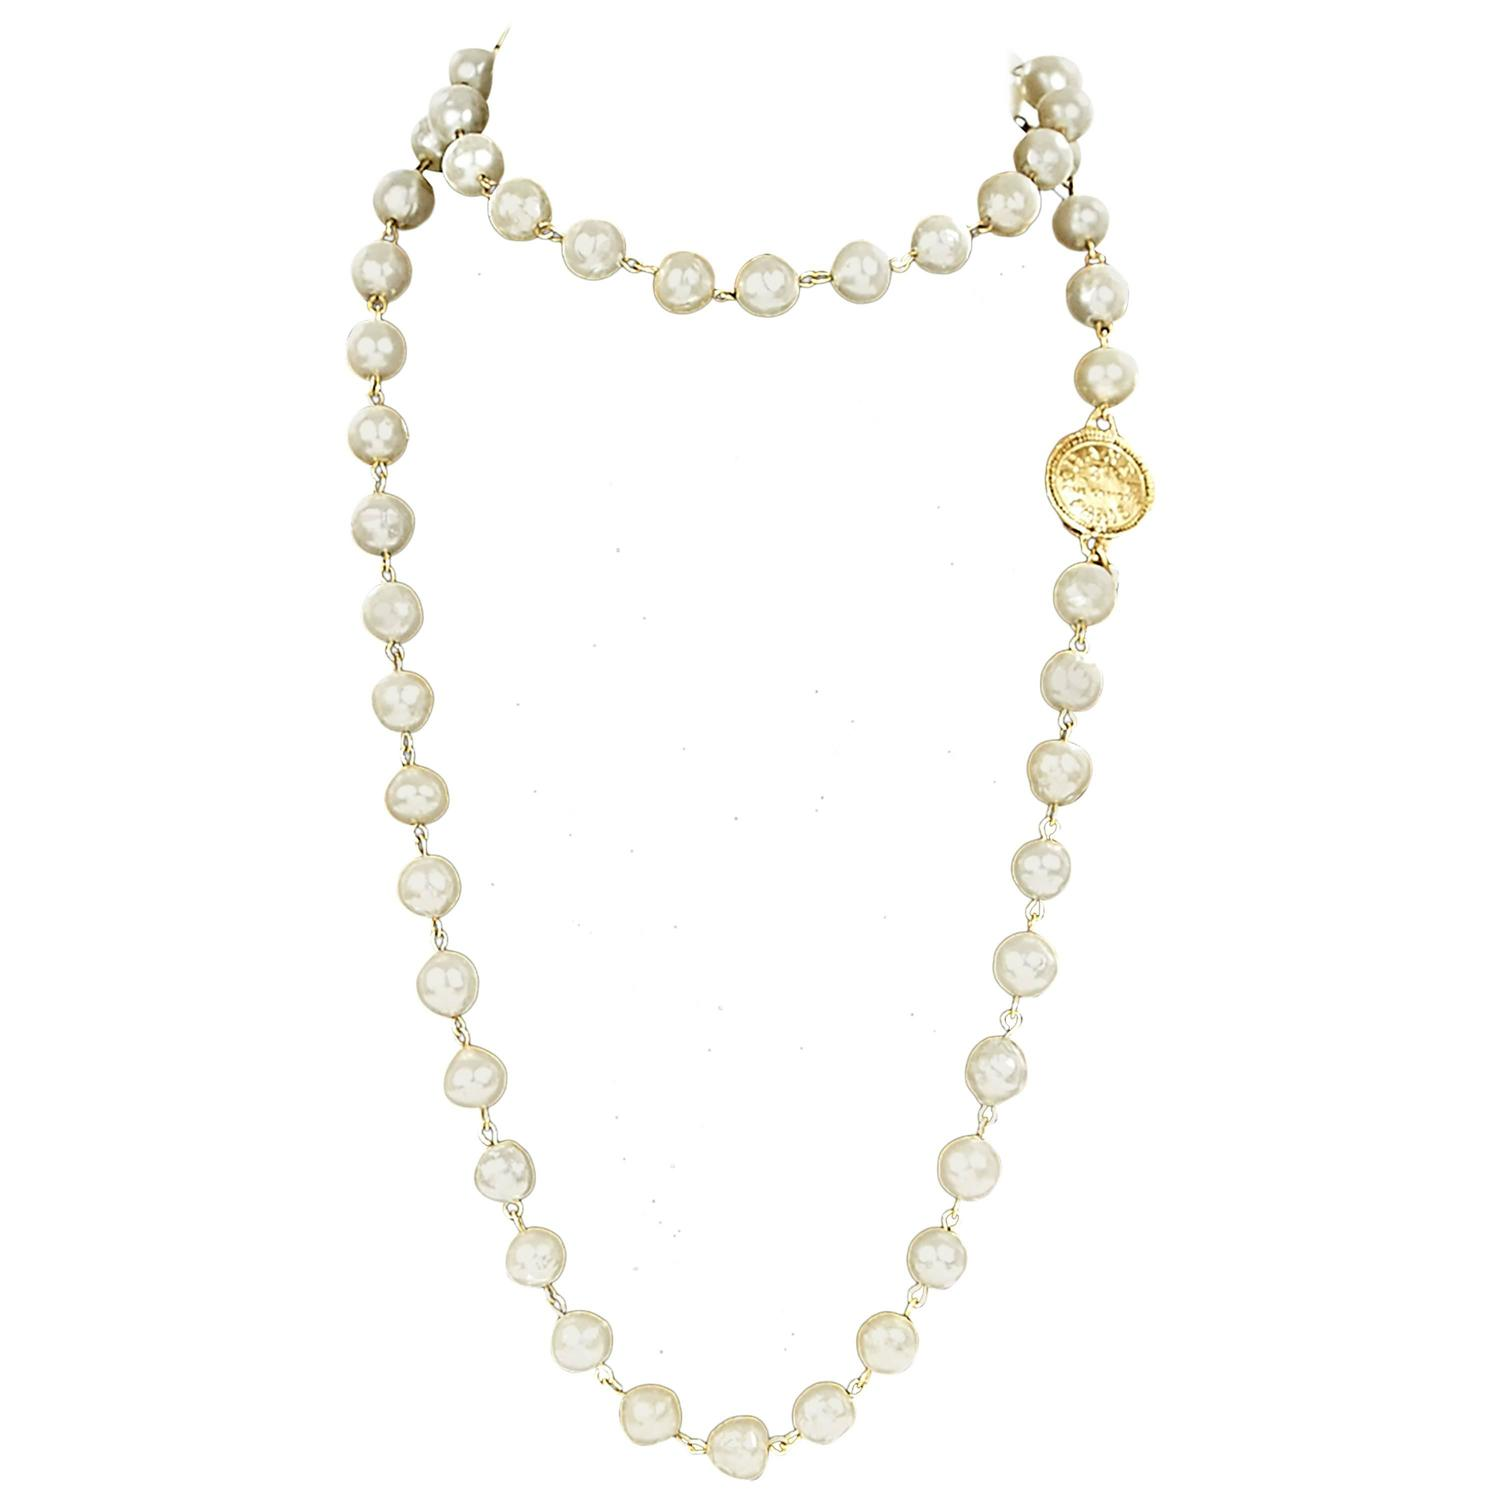 chanel pearl necklace at 1stdibs